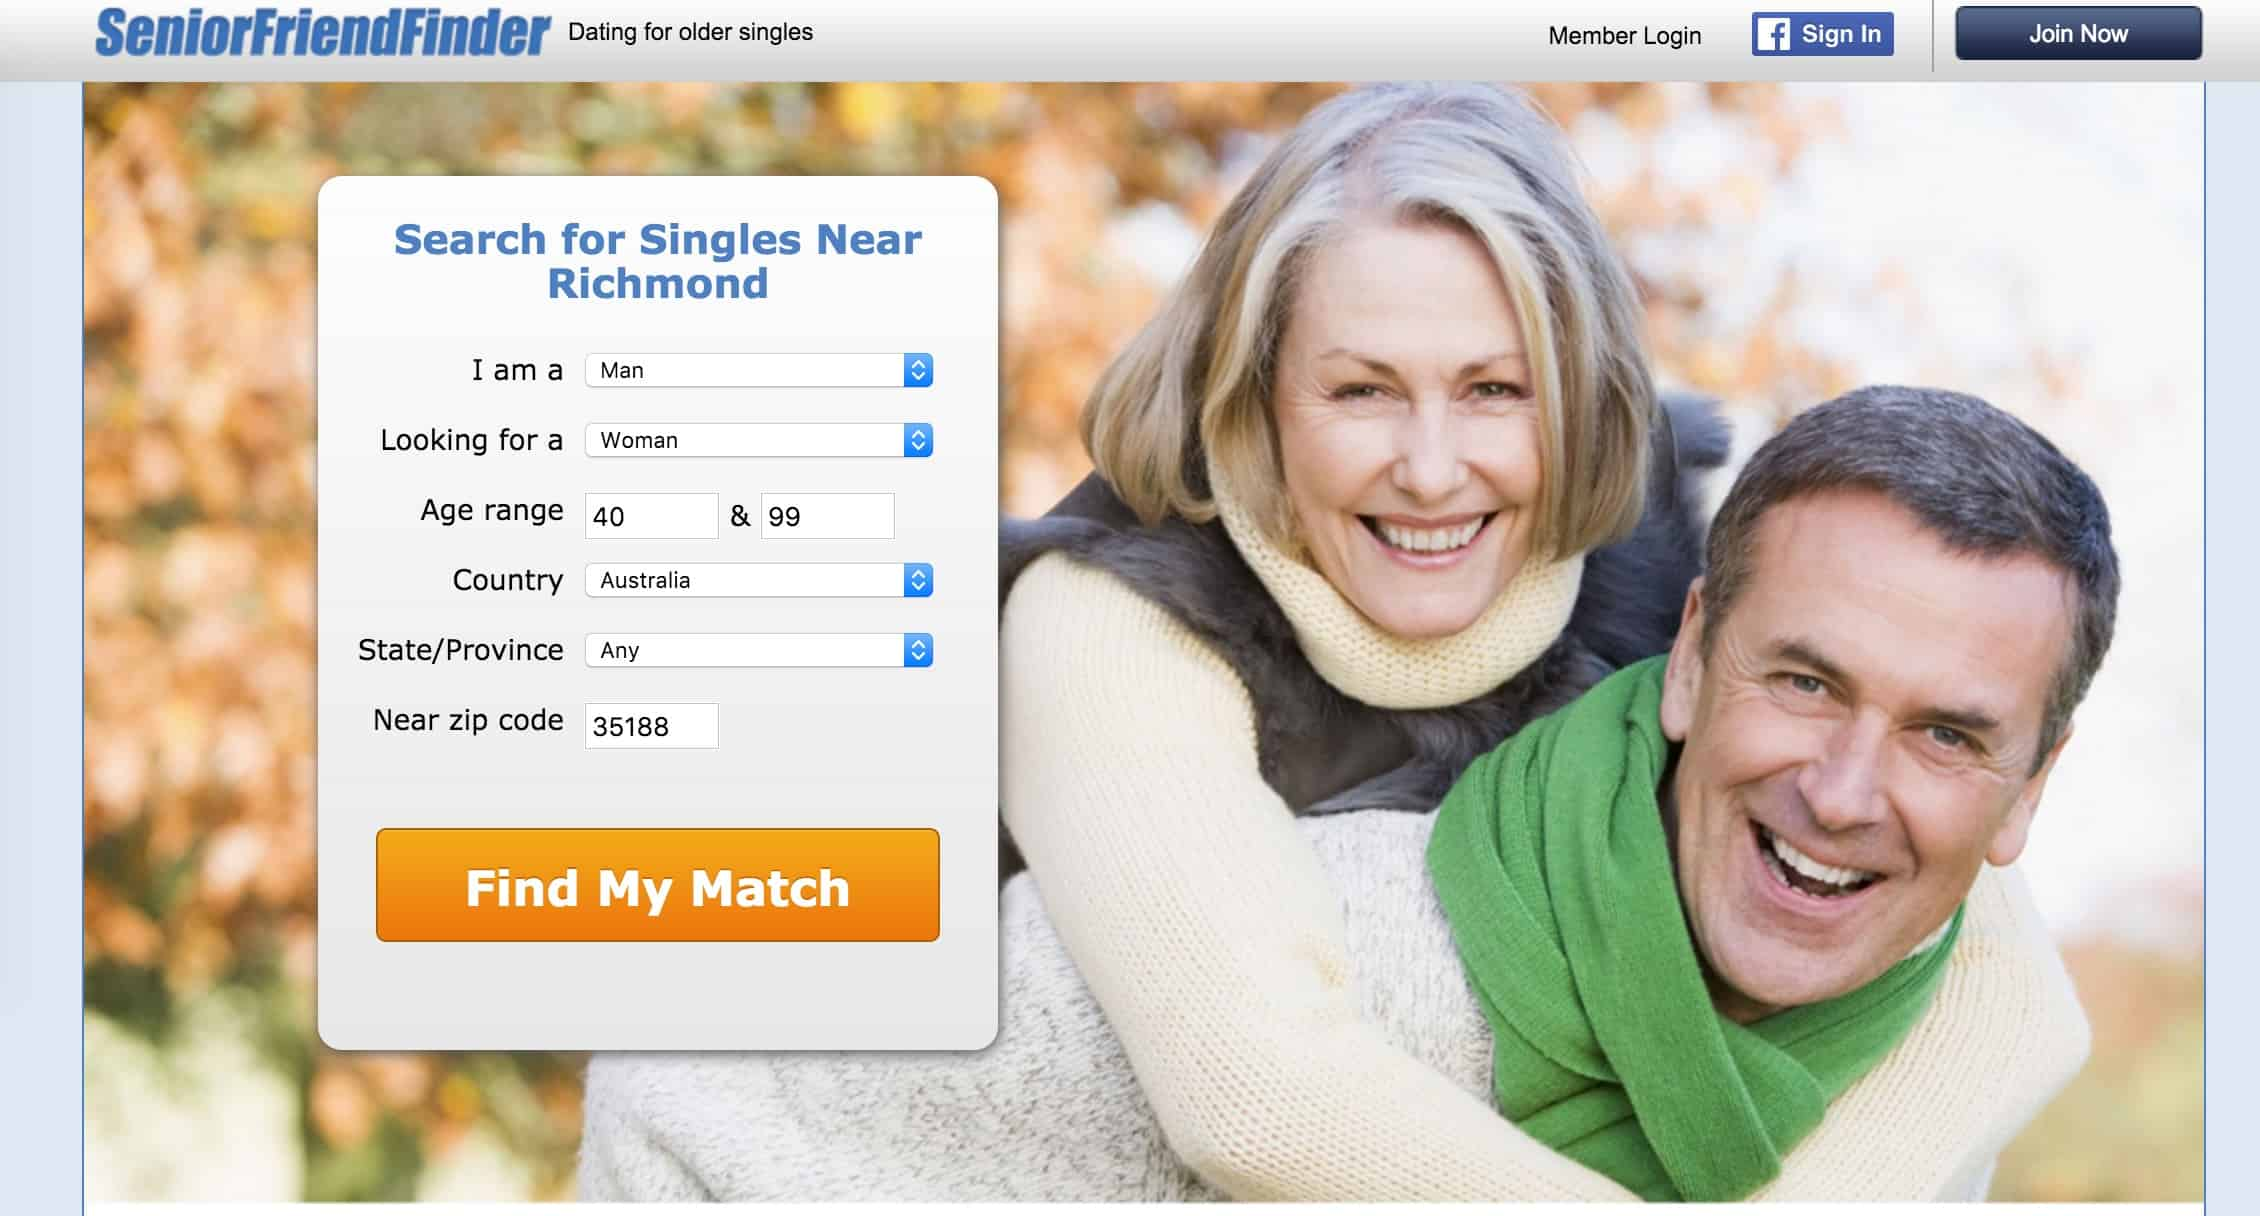 moron senior dating site Moron's best 100% free senior dating site join mingle2's fun online community of moron senior singles browse thousands of senior personal ads completely for free.